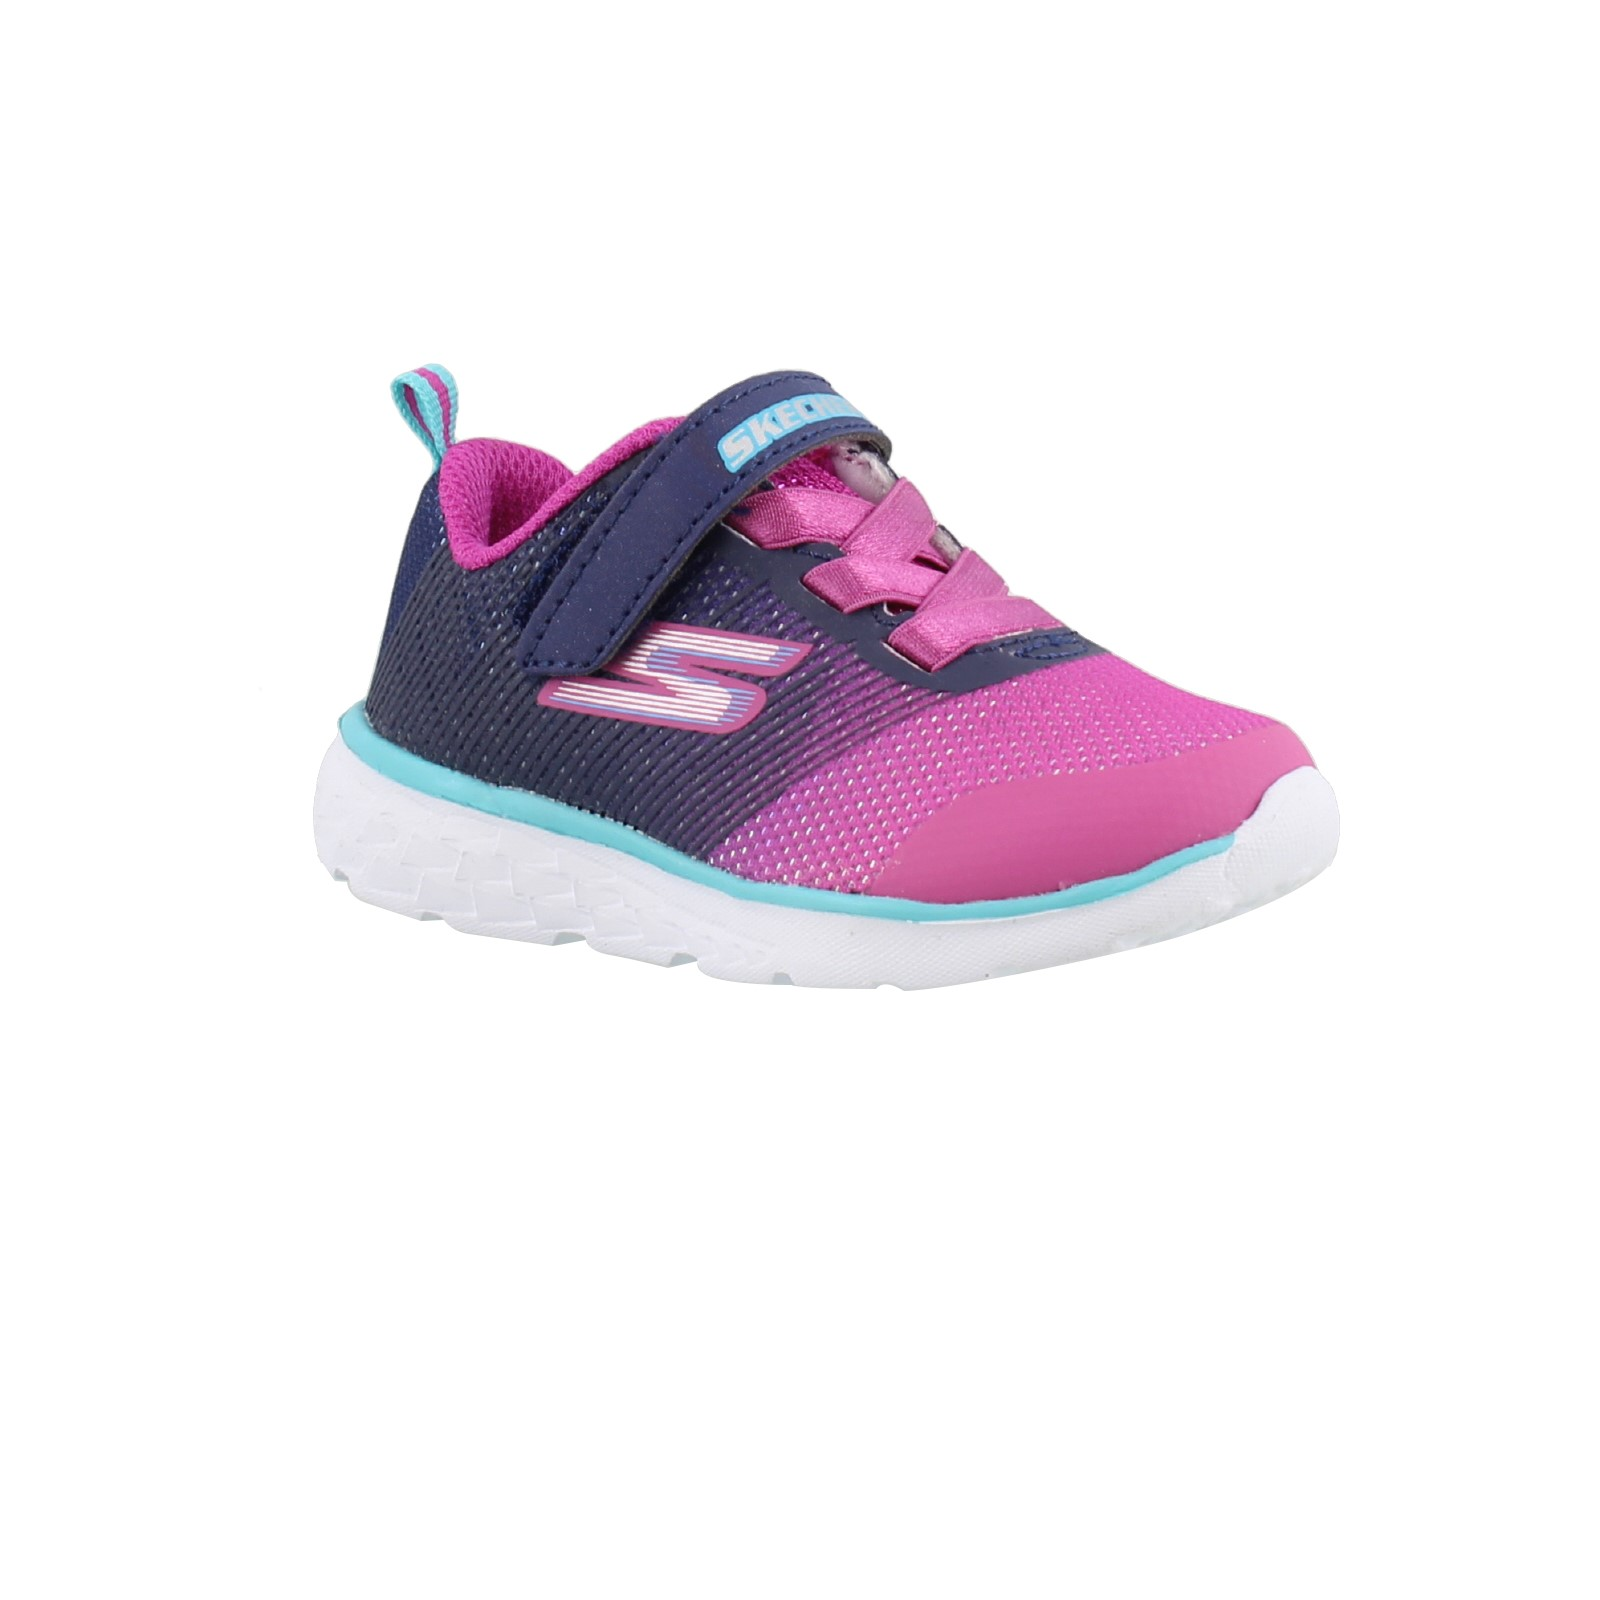 Infant S Skechers Girls Go Run 400 Sparkle Zooms Shoes